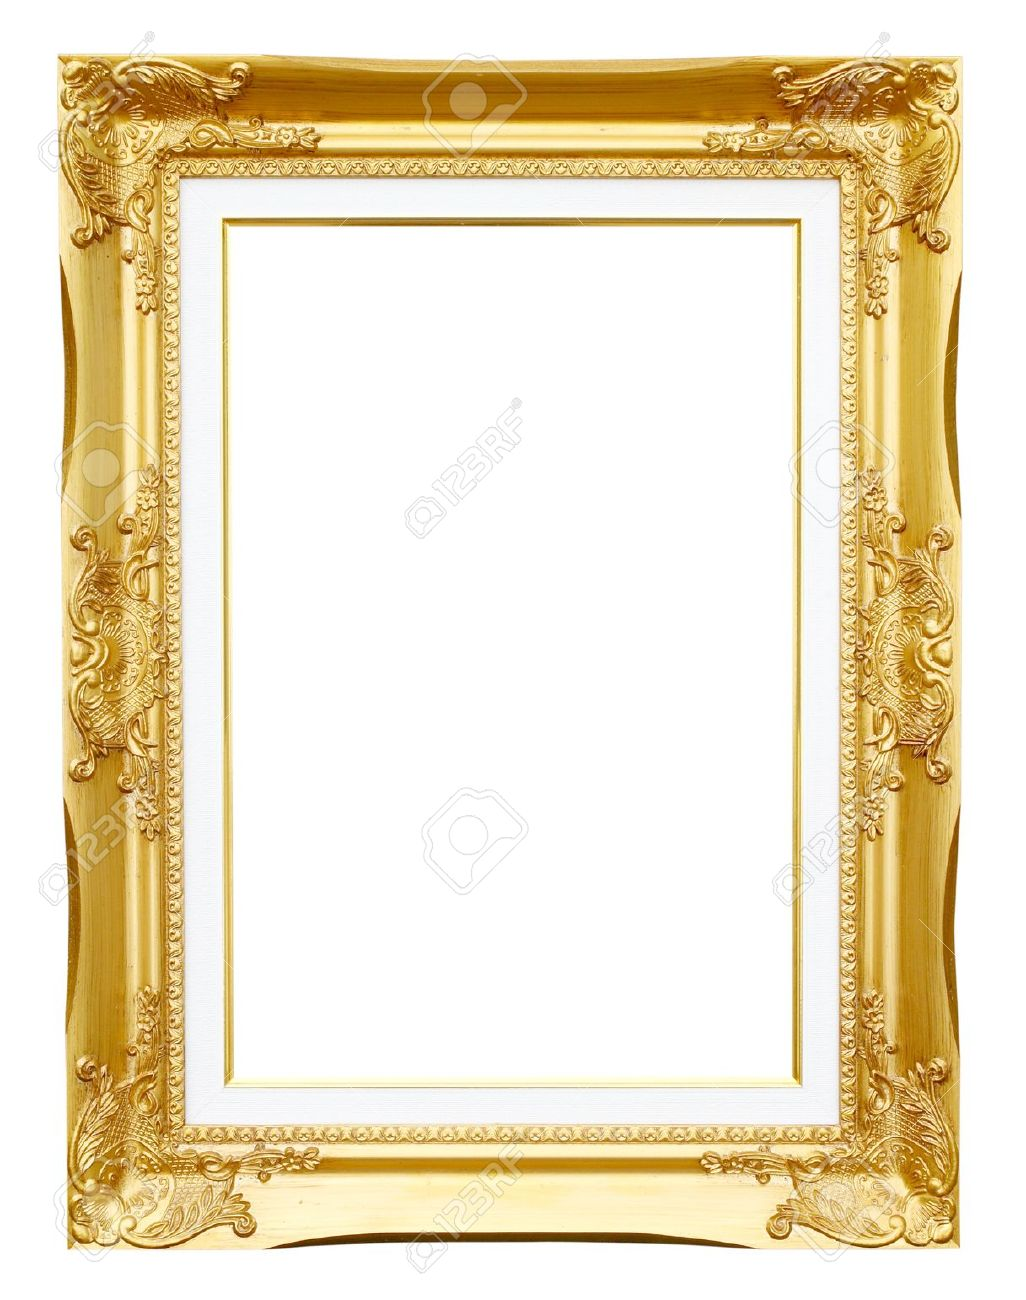 Golden Frame Picture On White Background Stock Photo, Picture And ...